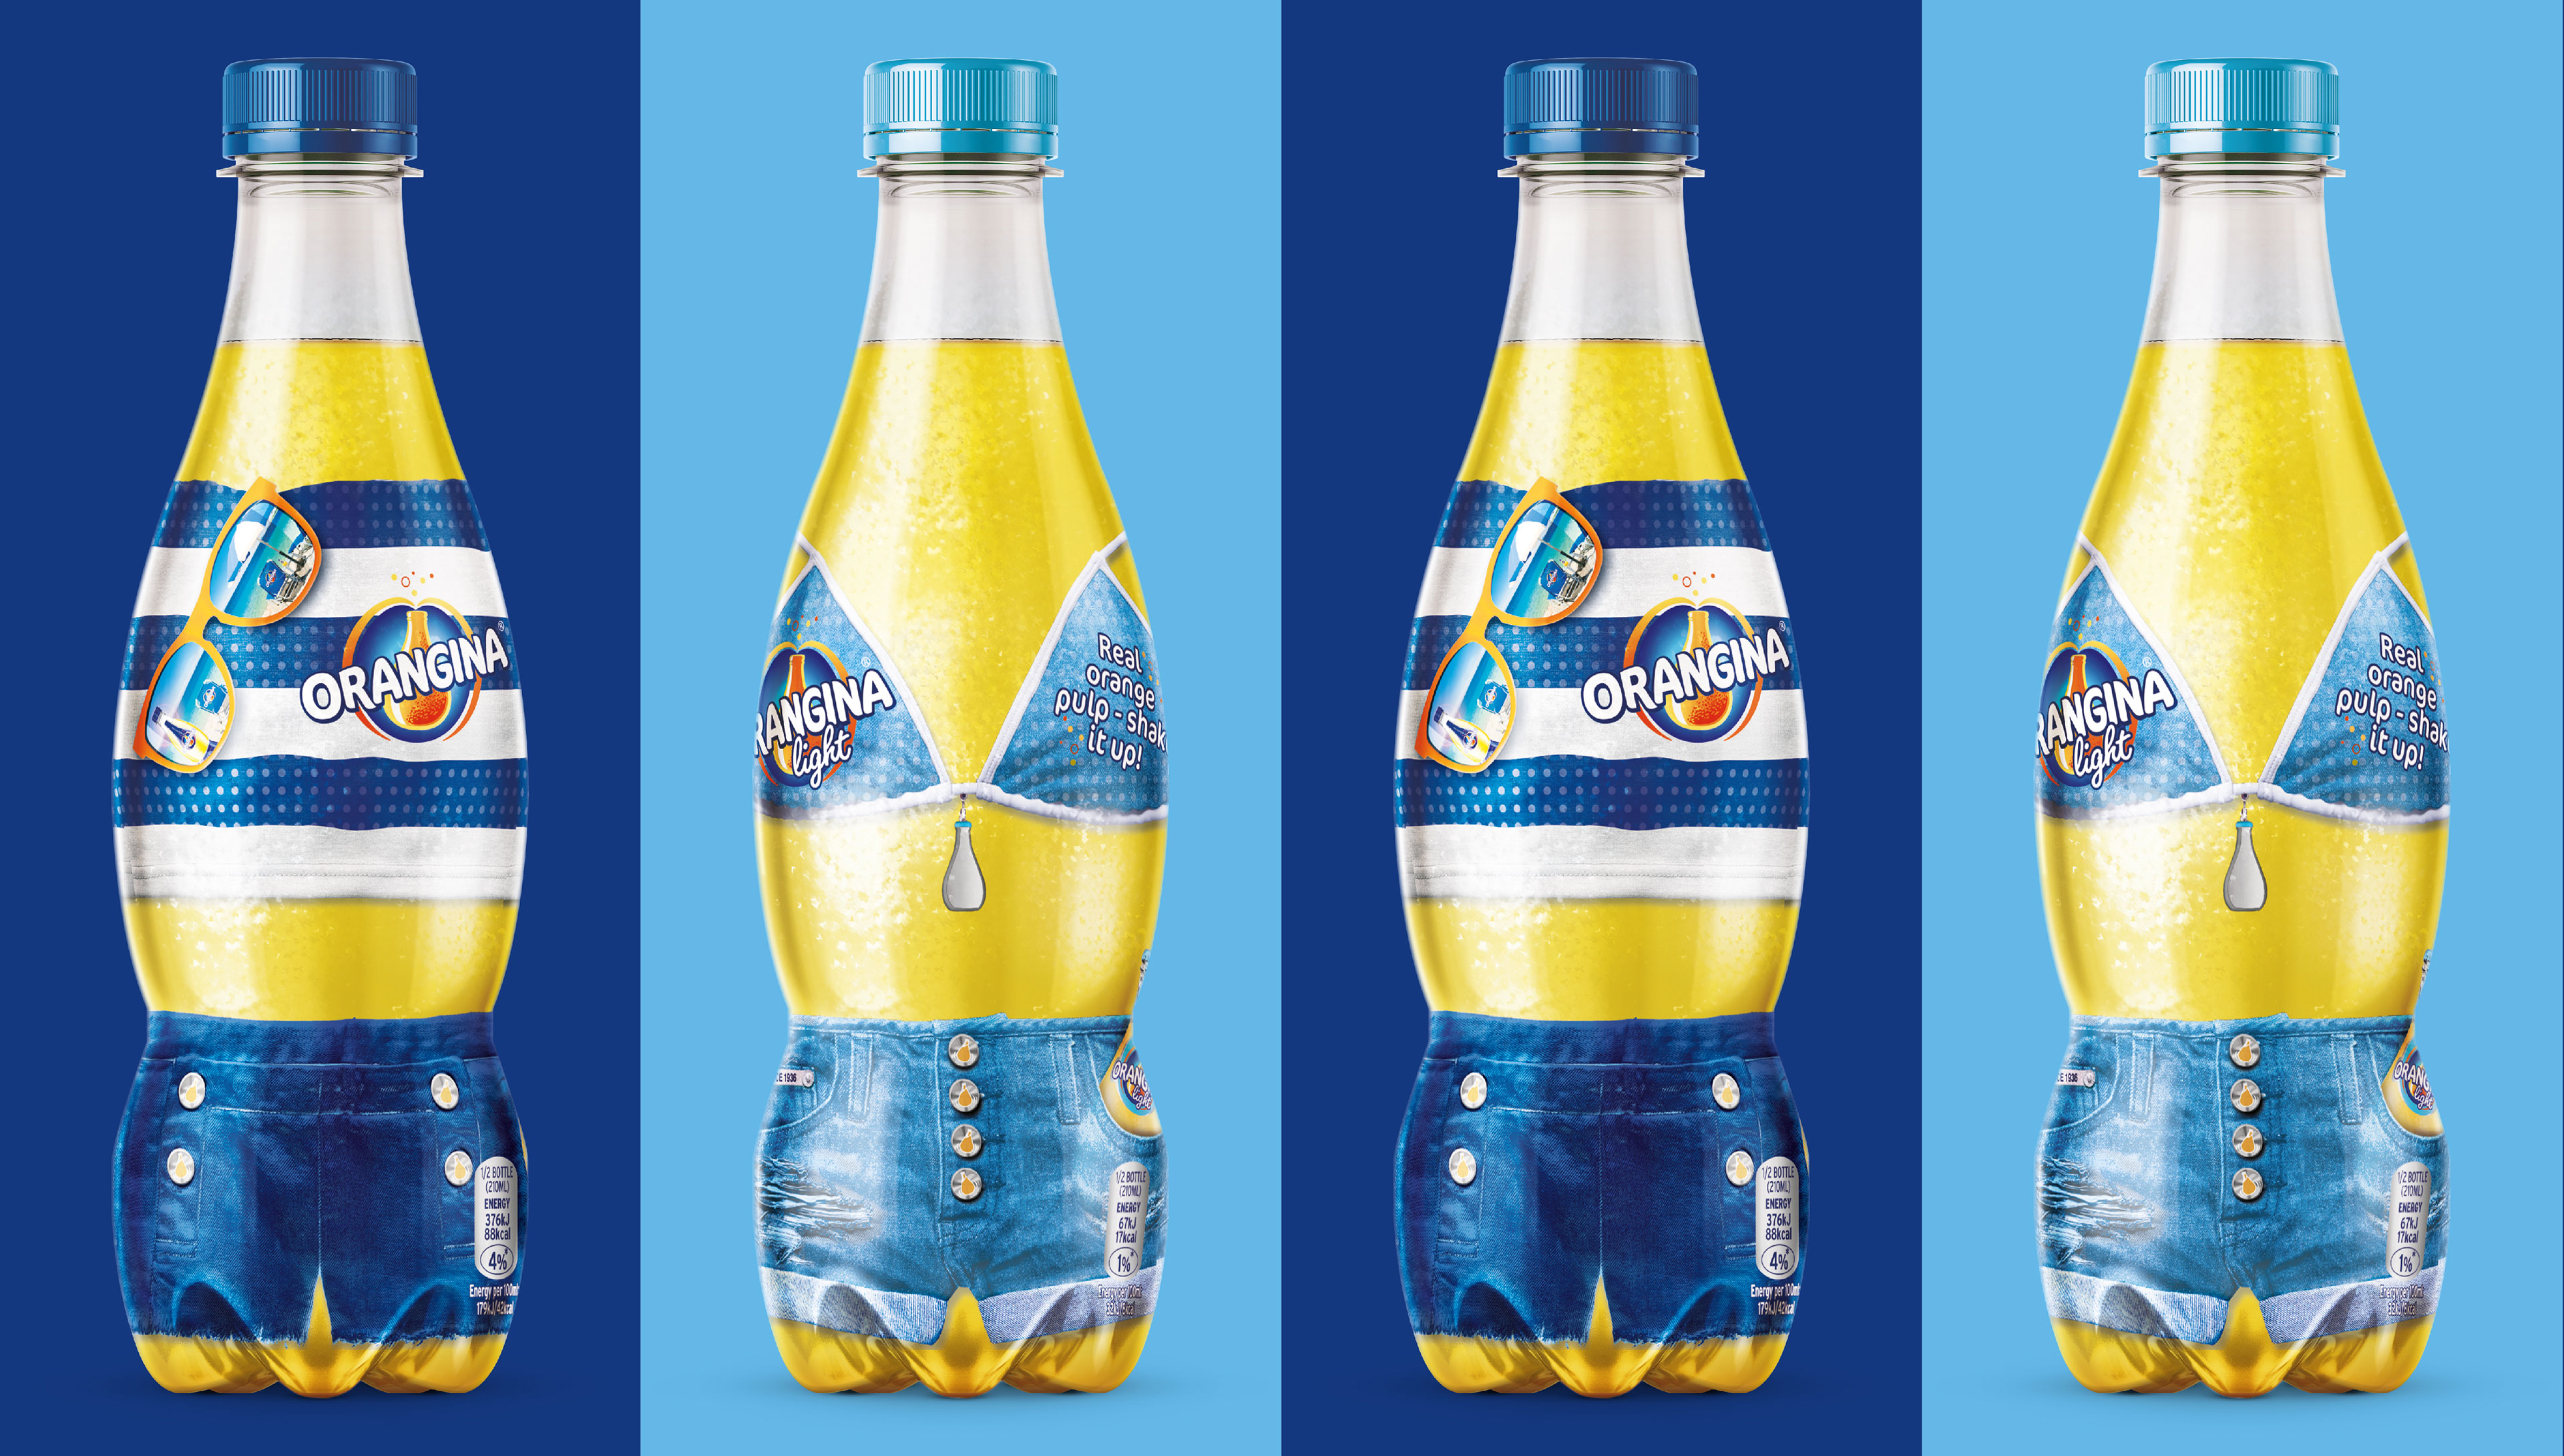 Orangina Beach Bottles Design